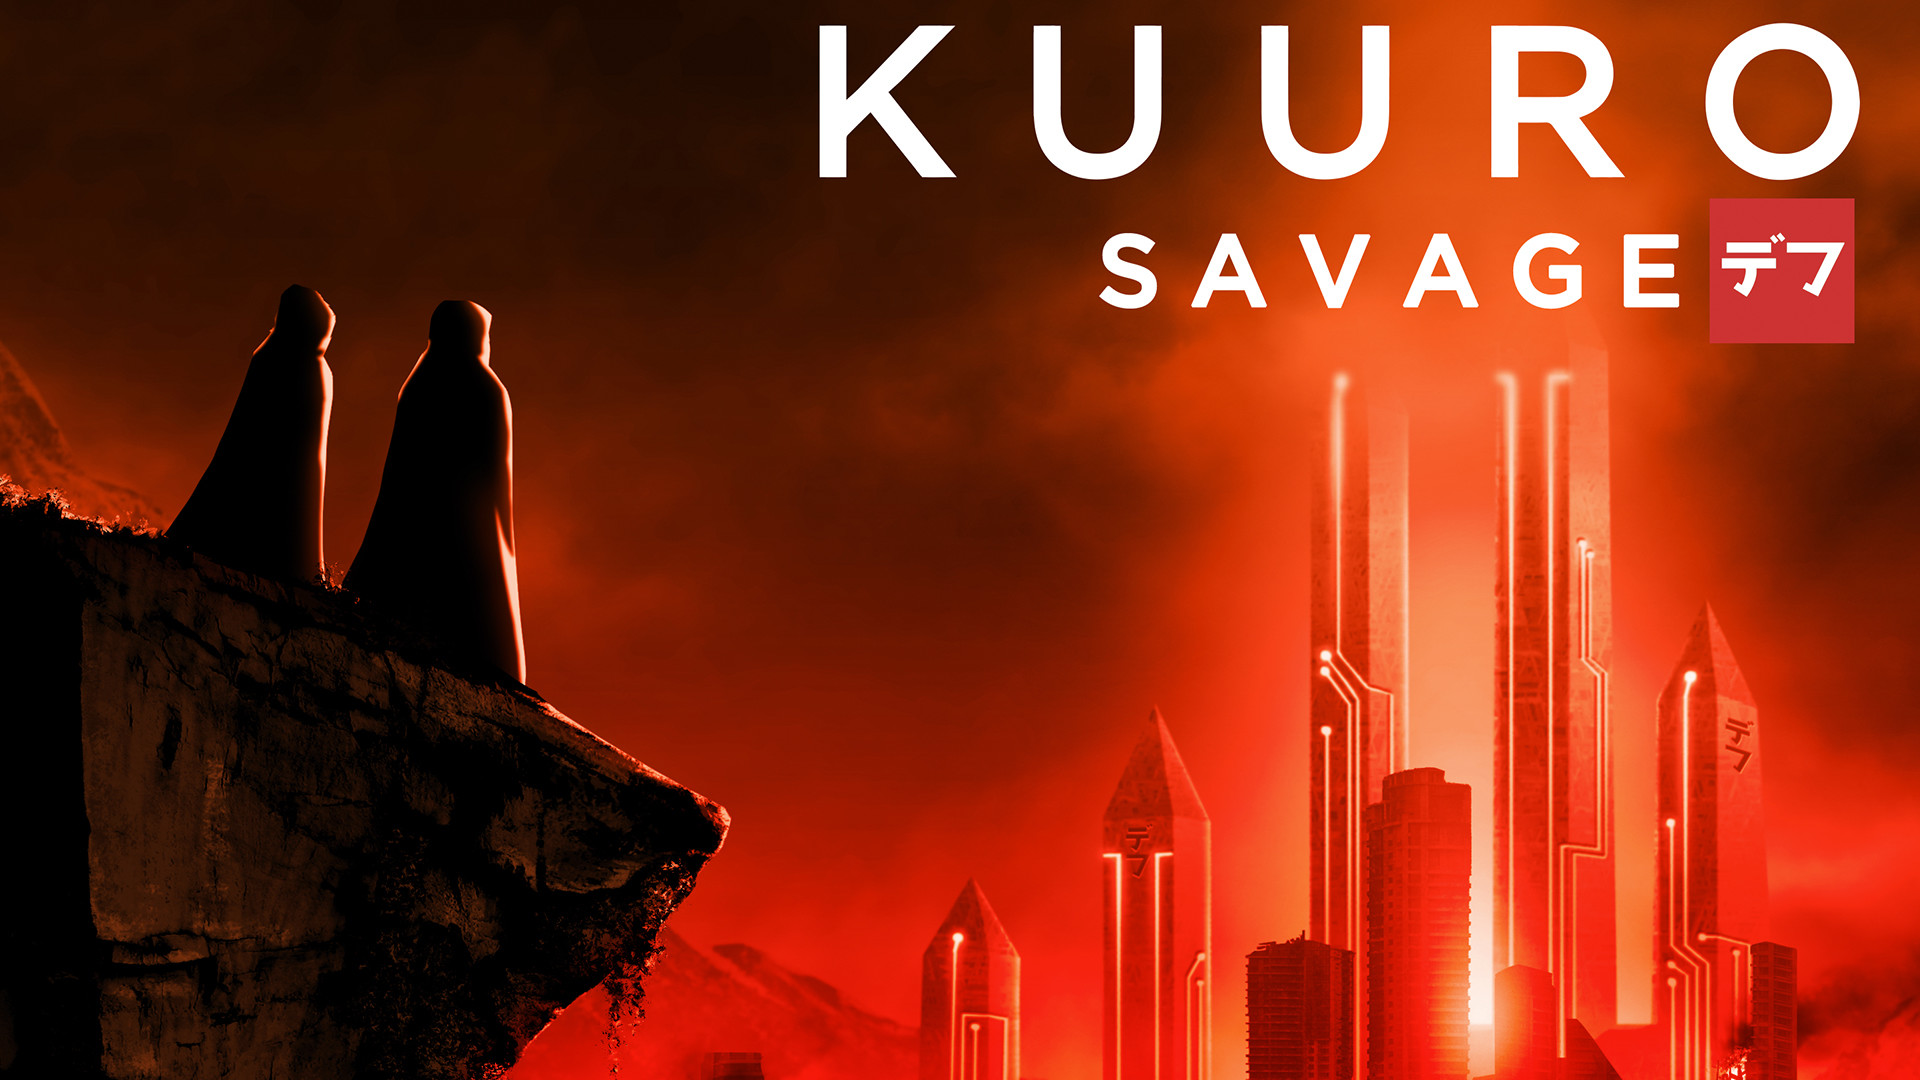 1920x1080 [Wallpapers] Kuuro - Savage